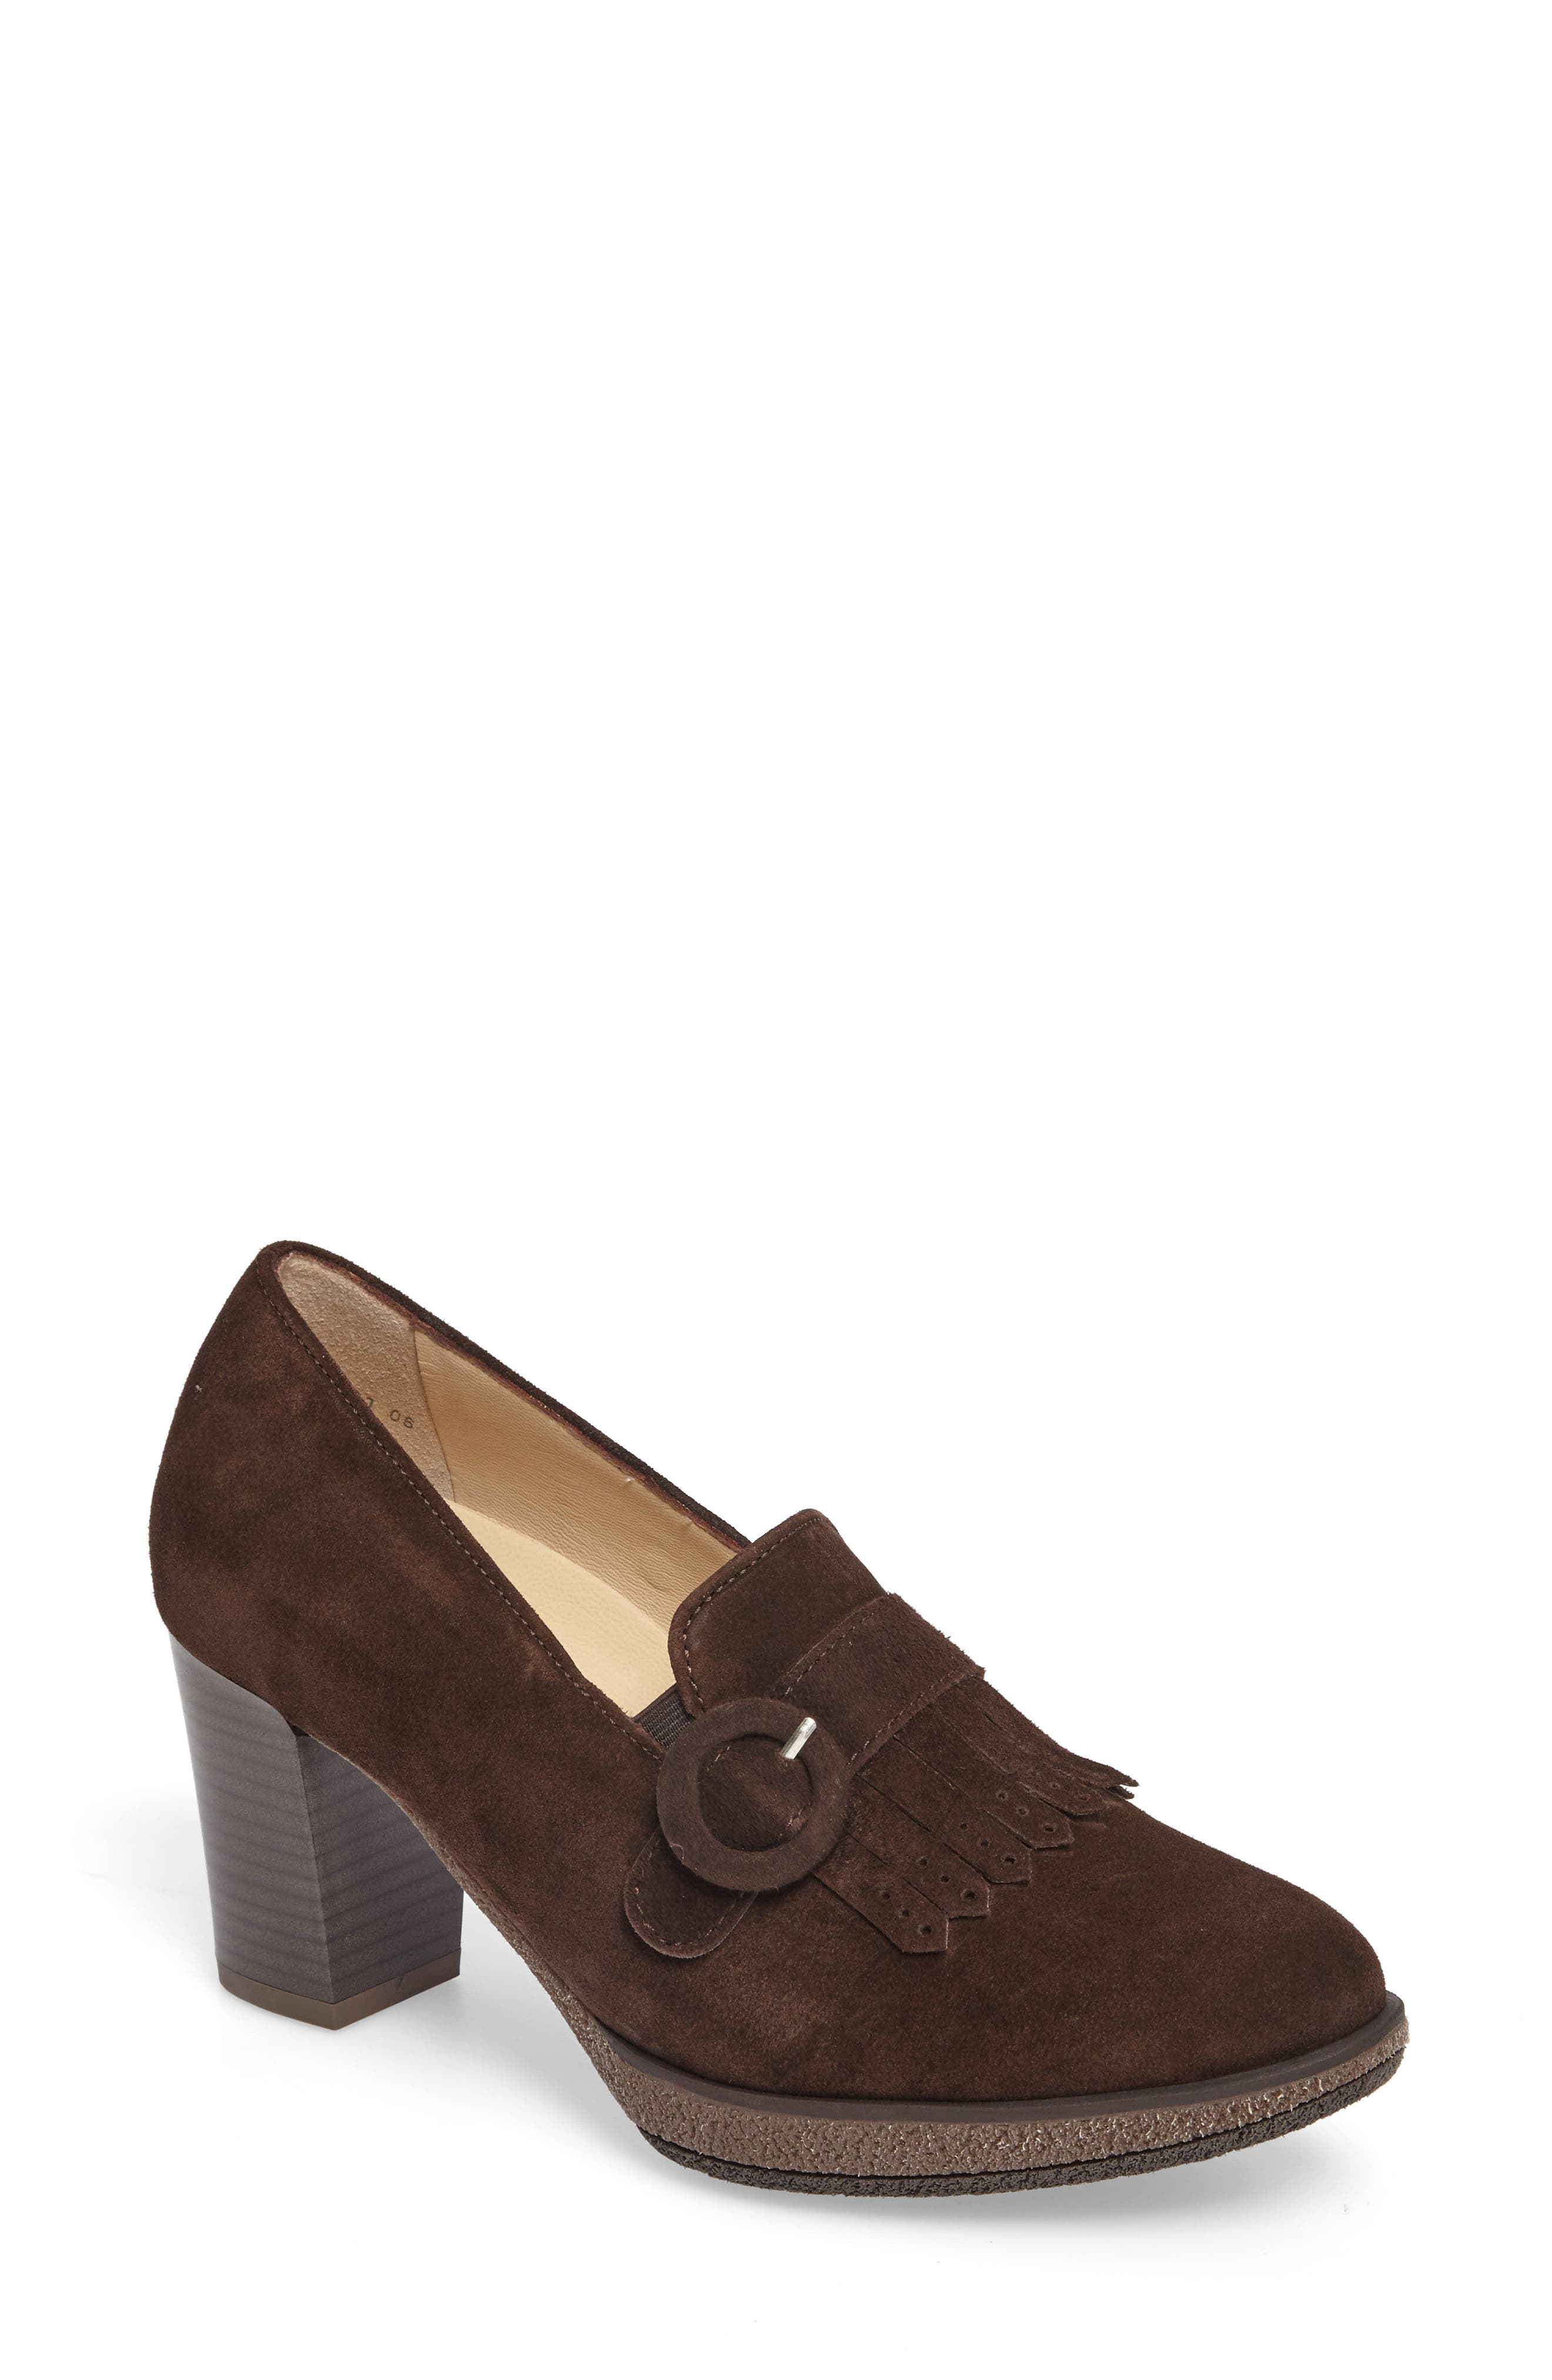 ARA, Becky Loafer Pump, Main thumbnail 1, color, BROWN SUEDE